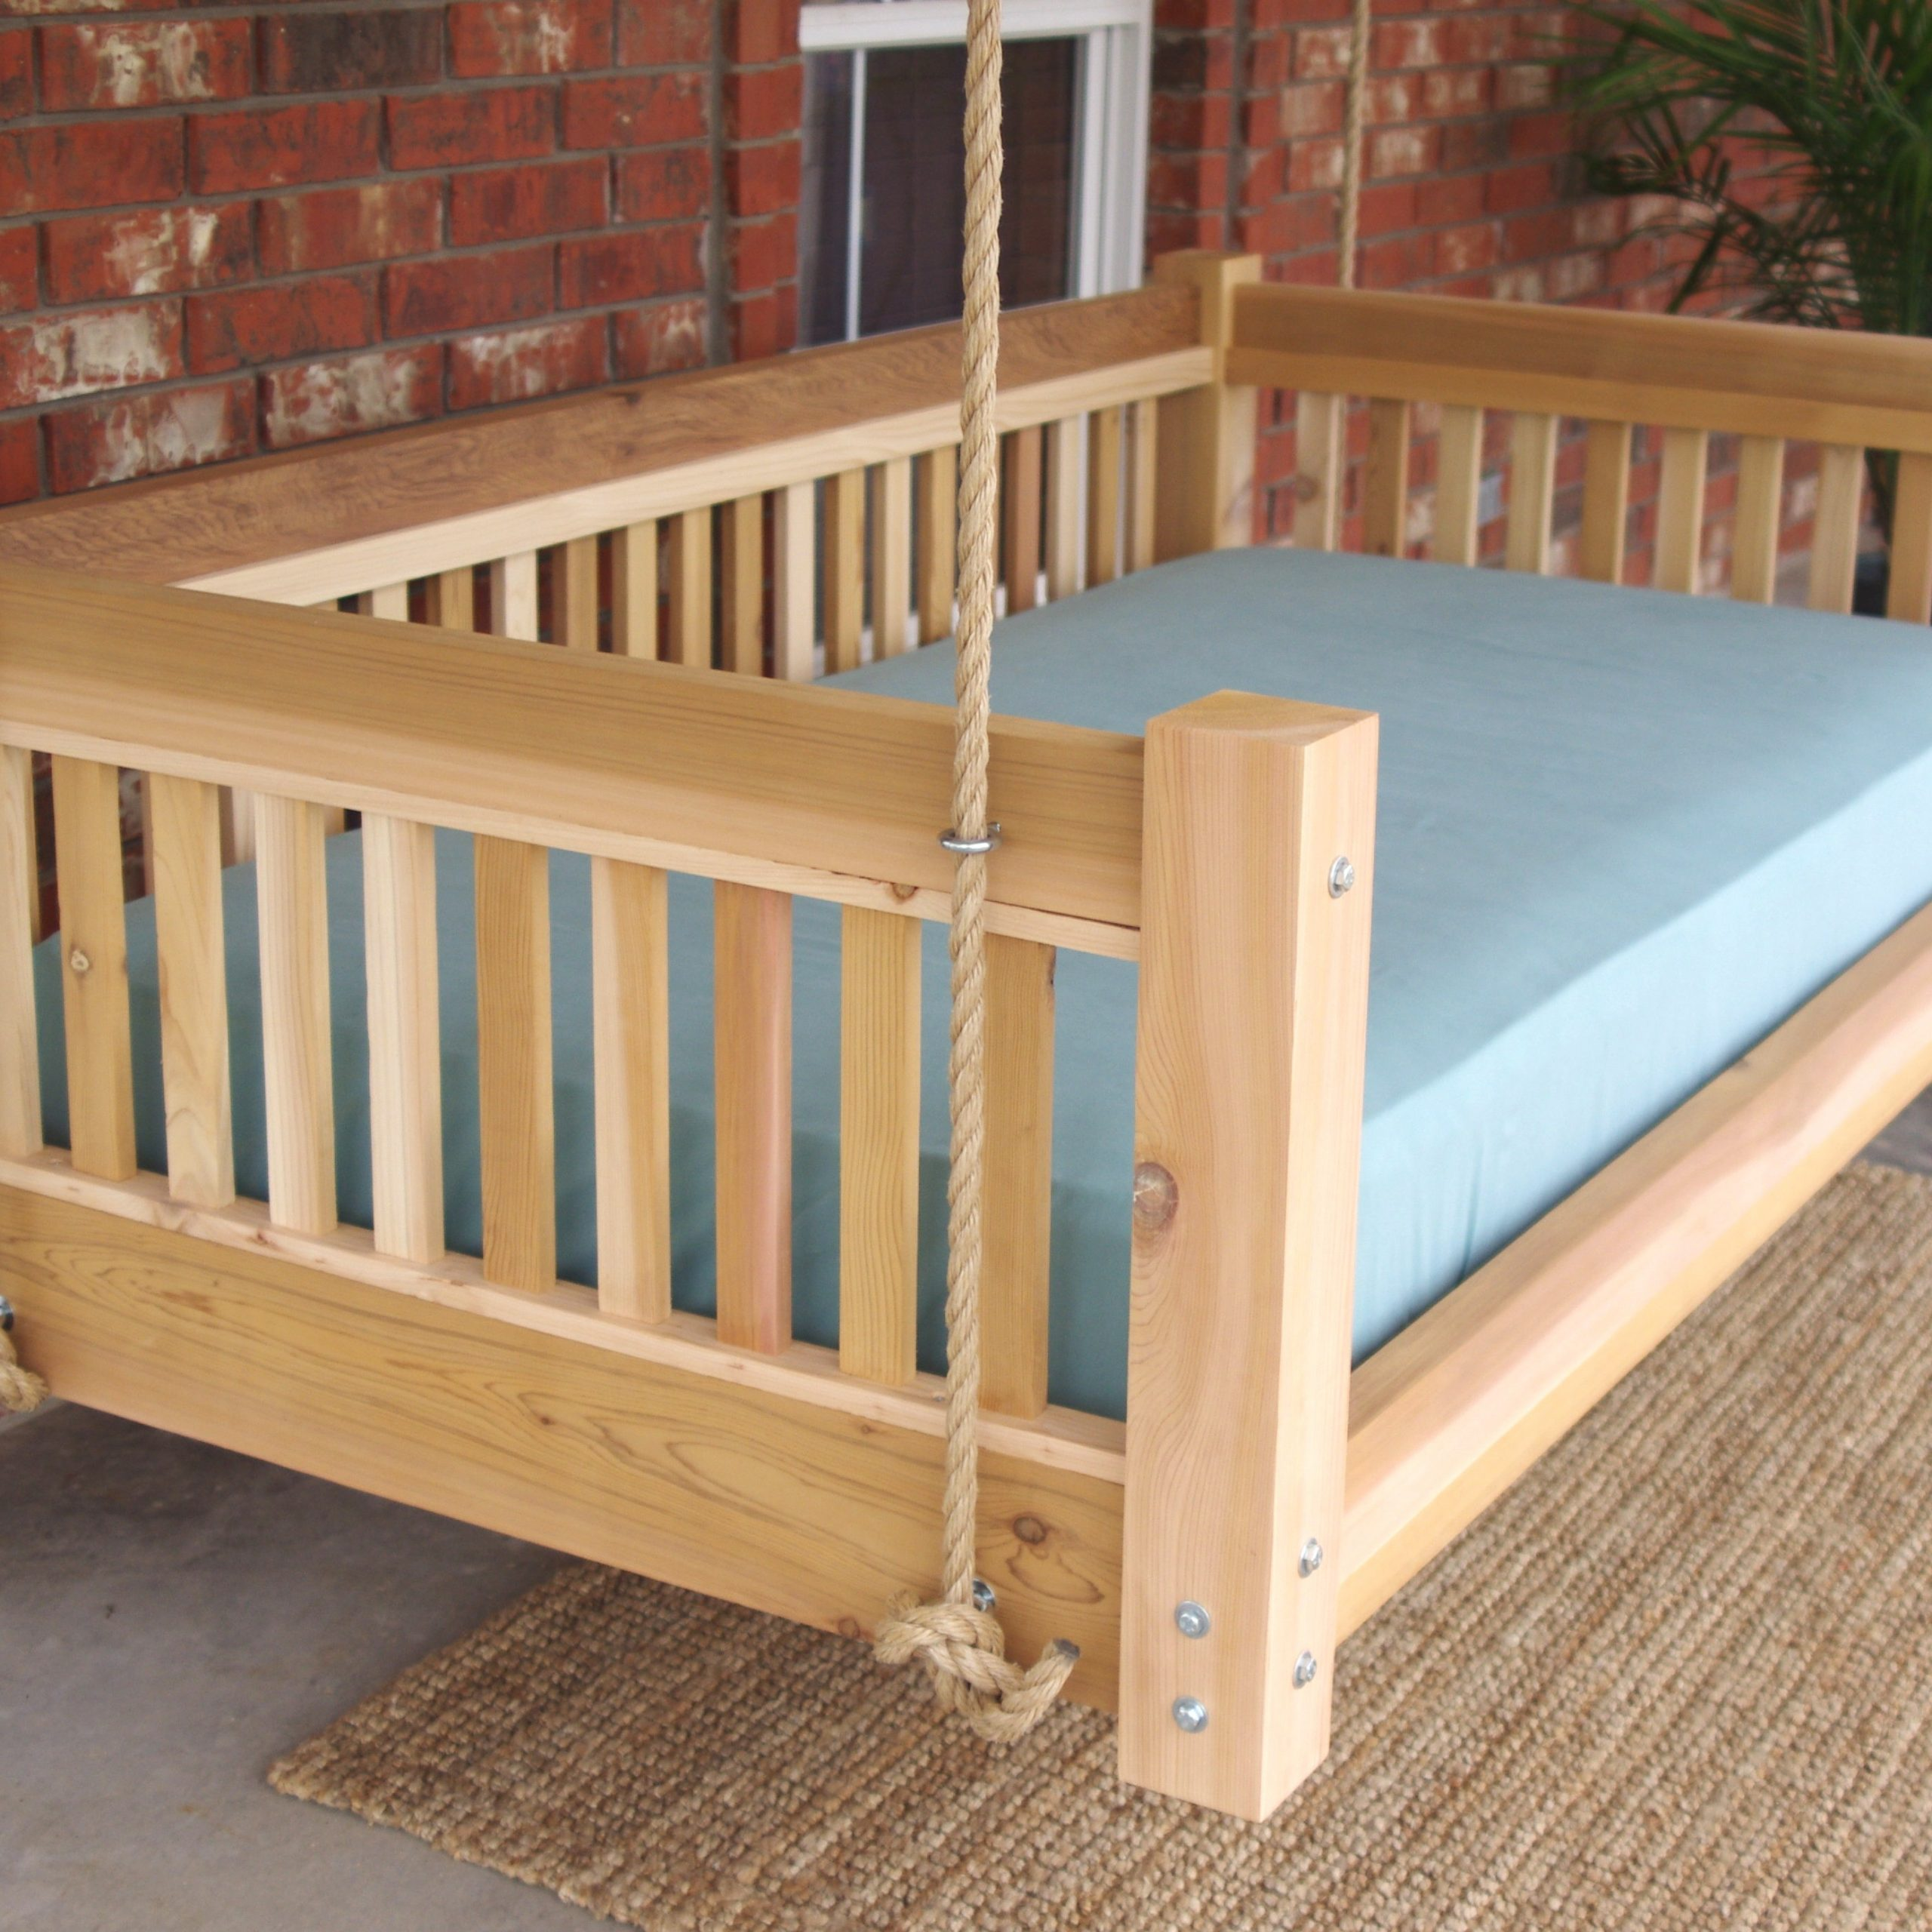 Promising Hanging Day Bed Millwood Pines Longbridge Cedar For Day Bed Porch Swings (View 20 of 25)